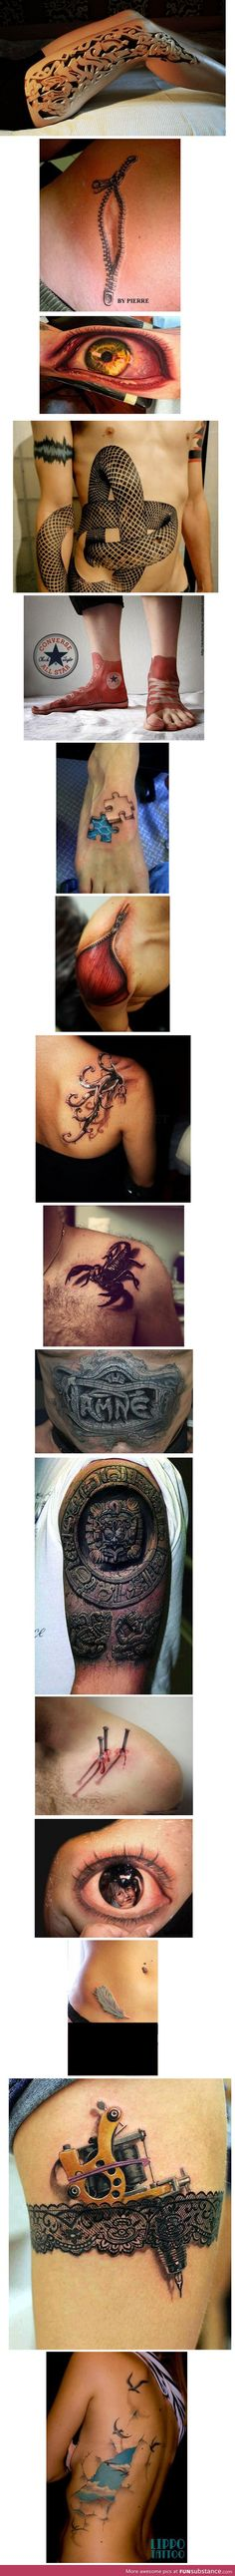 Awesome 3D Tattoos- not that I approve of tattoos. The artwork is amazing here! OMG. Some are so real try gross me out!!